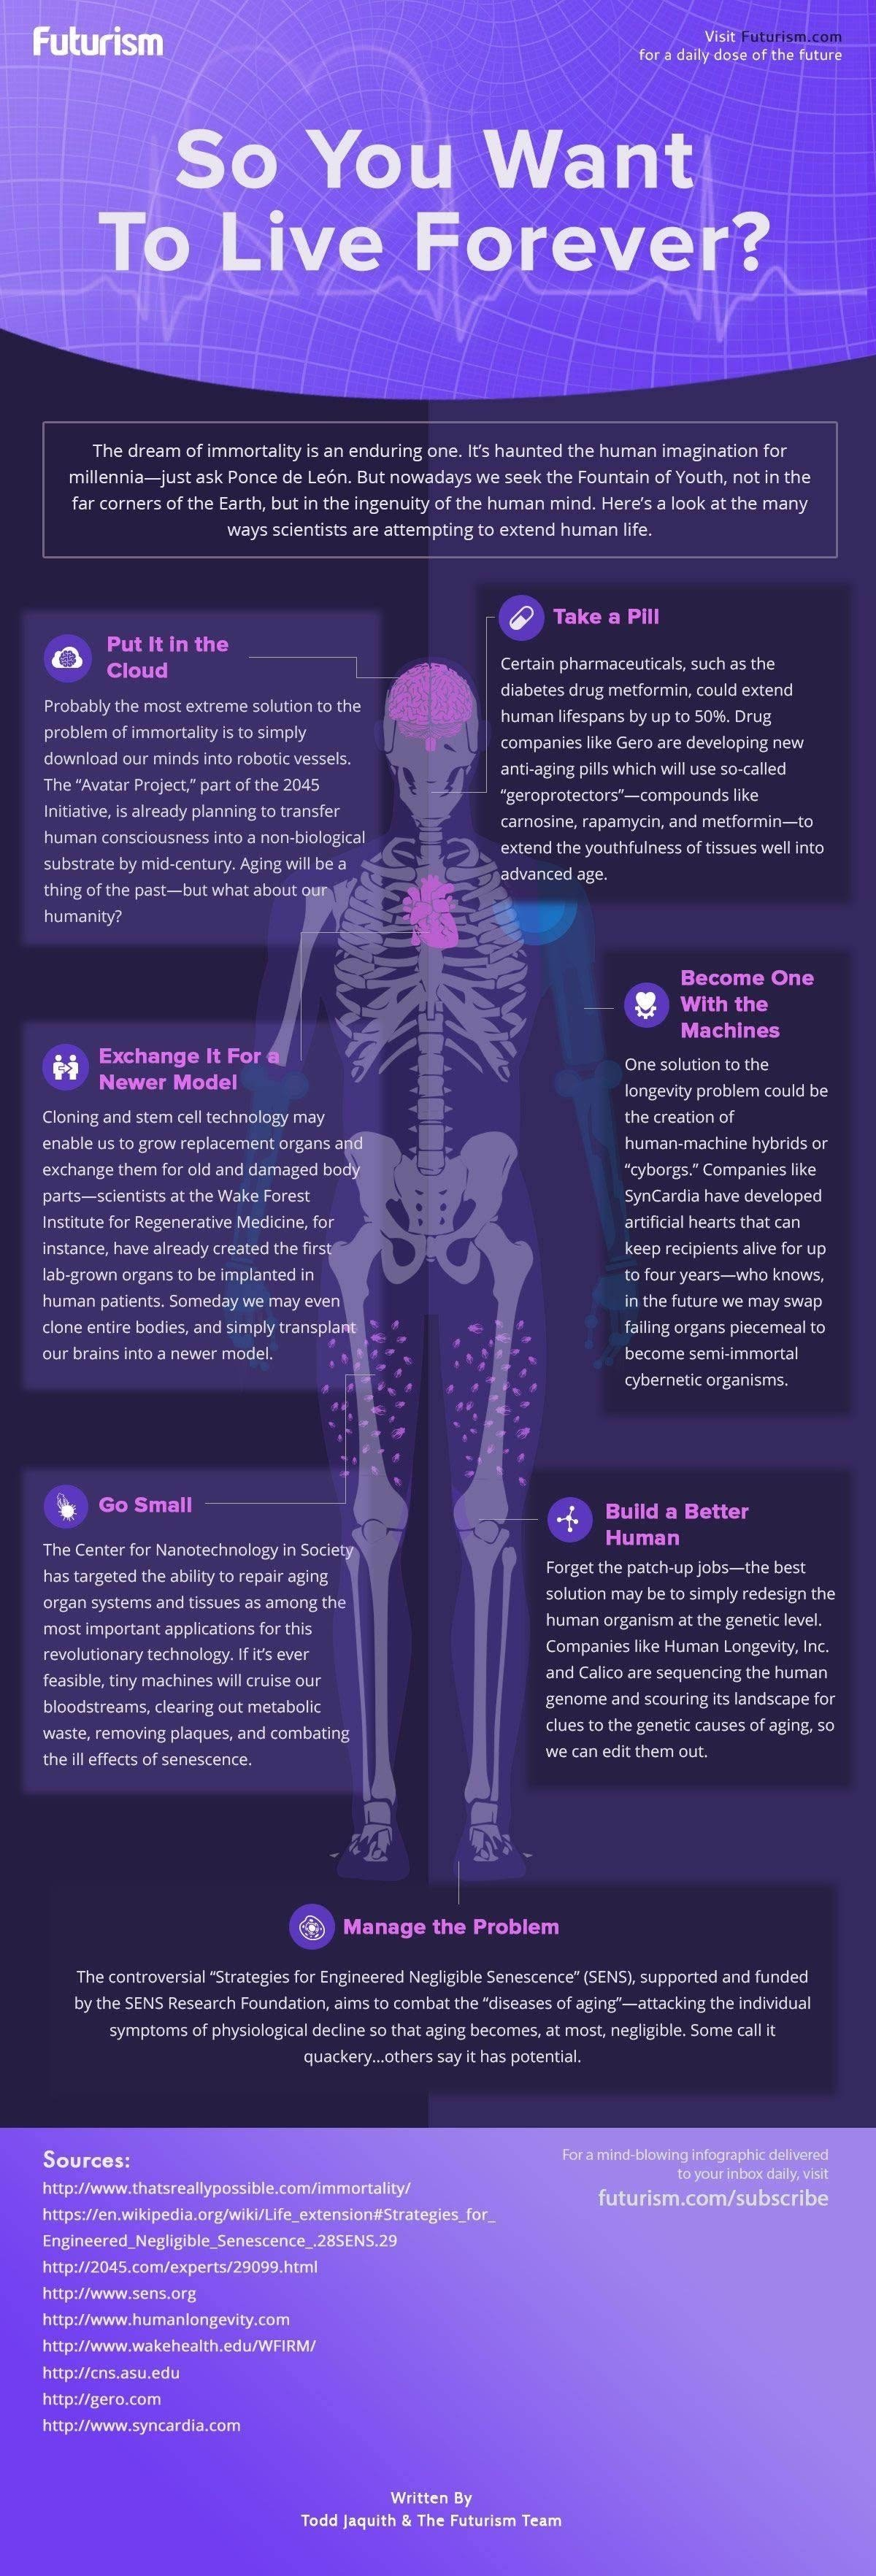 So you want to live forever #infographic